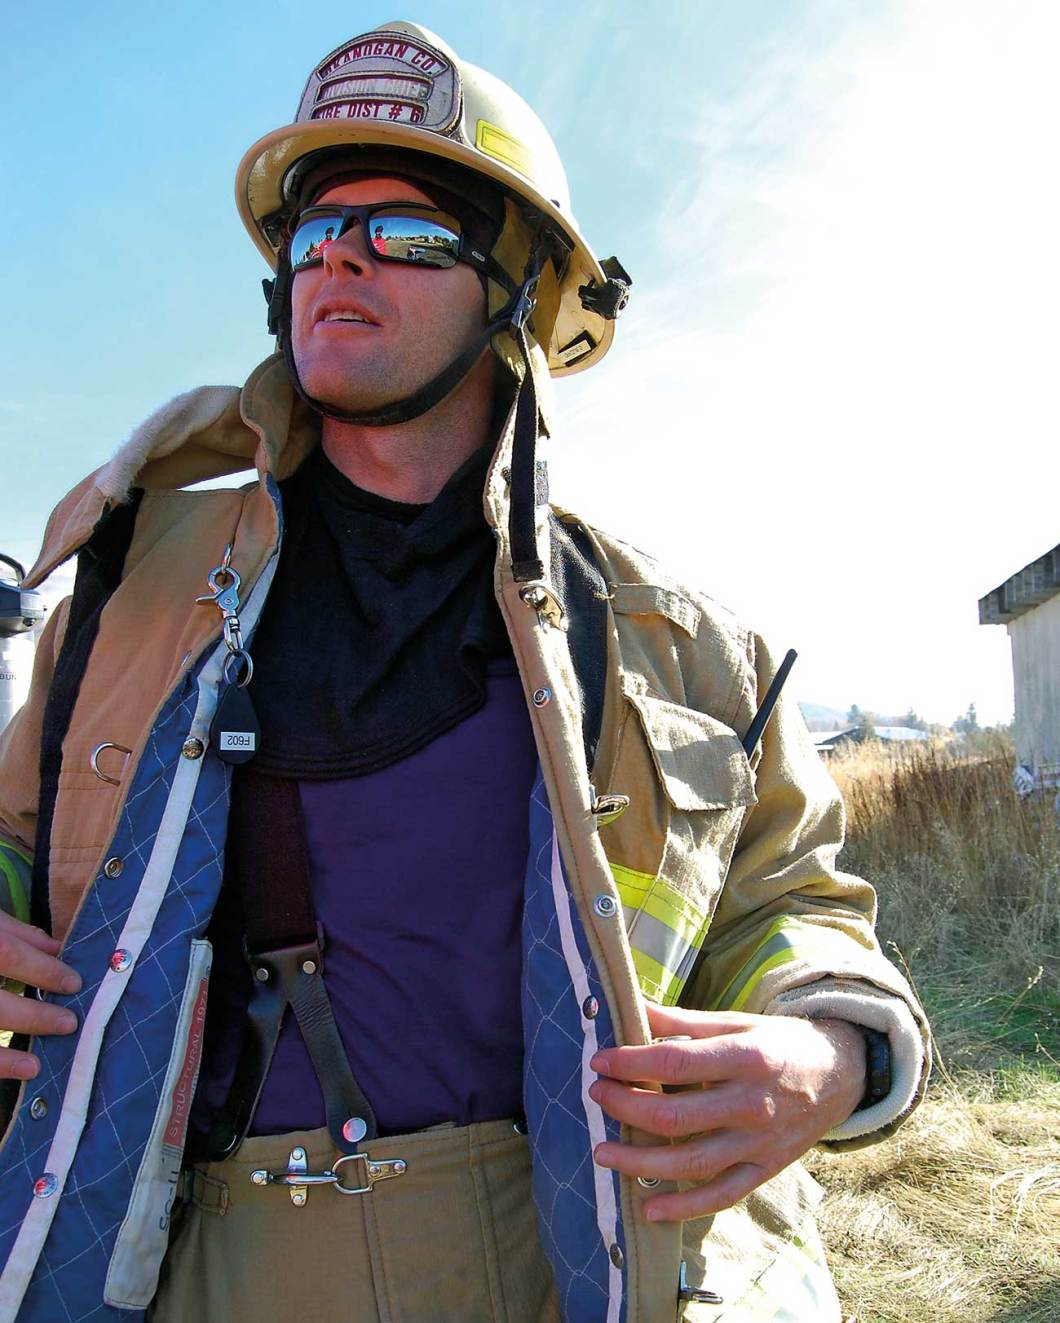 Ottis Buzzard, Okanogan Fire District, WA wears Armadillo Merino®.